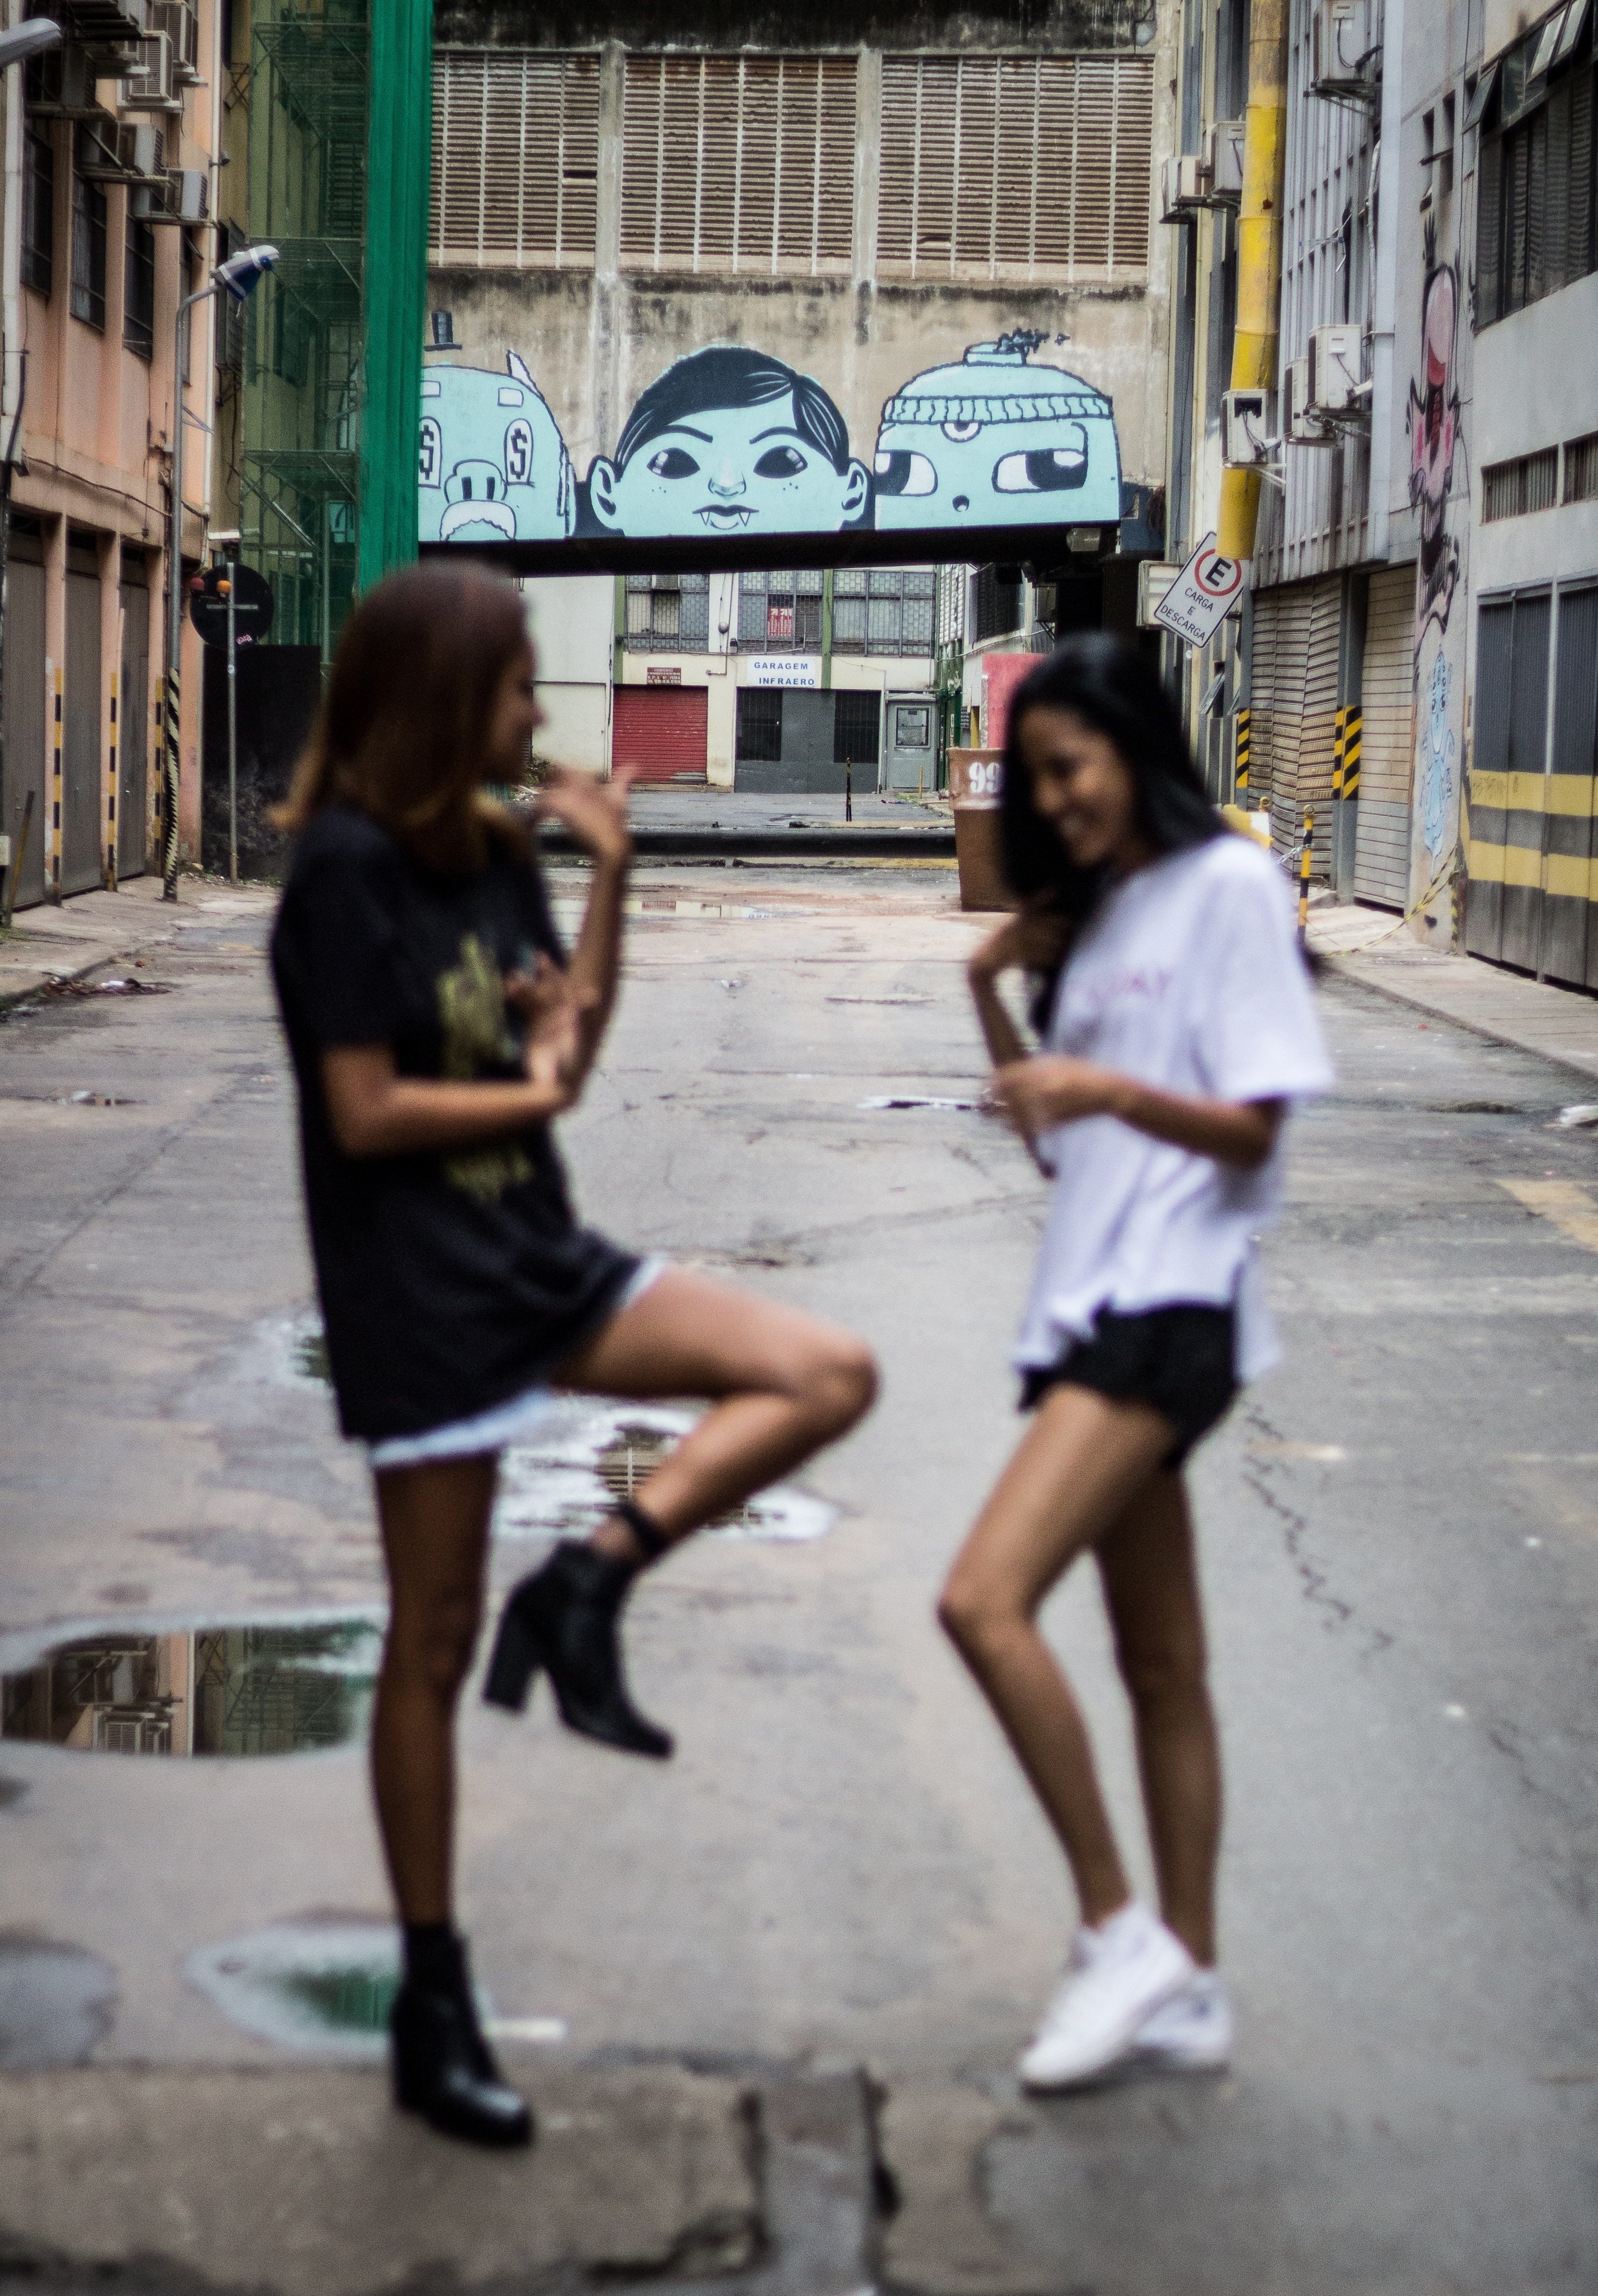 two women in the alley during daytime